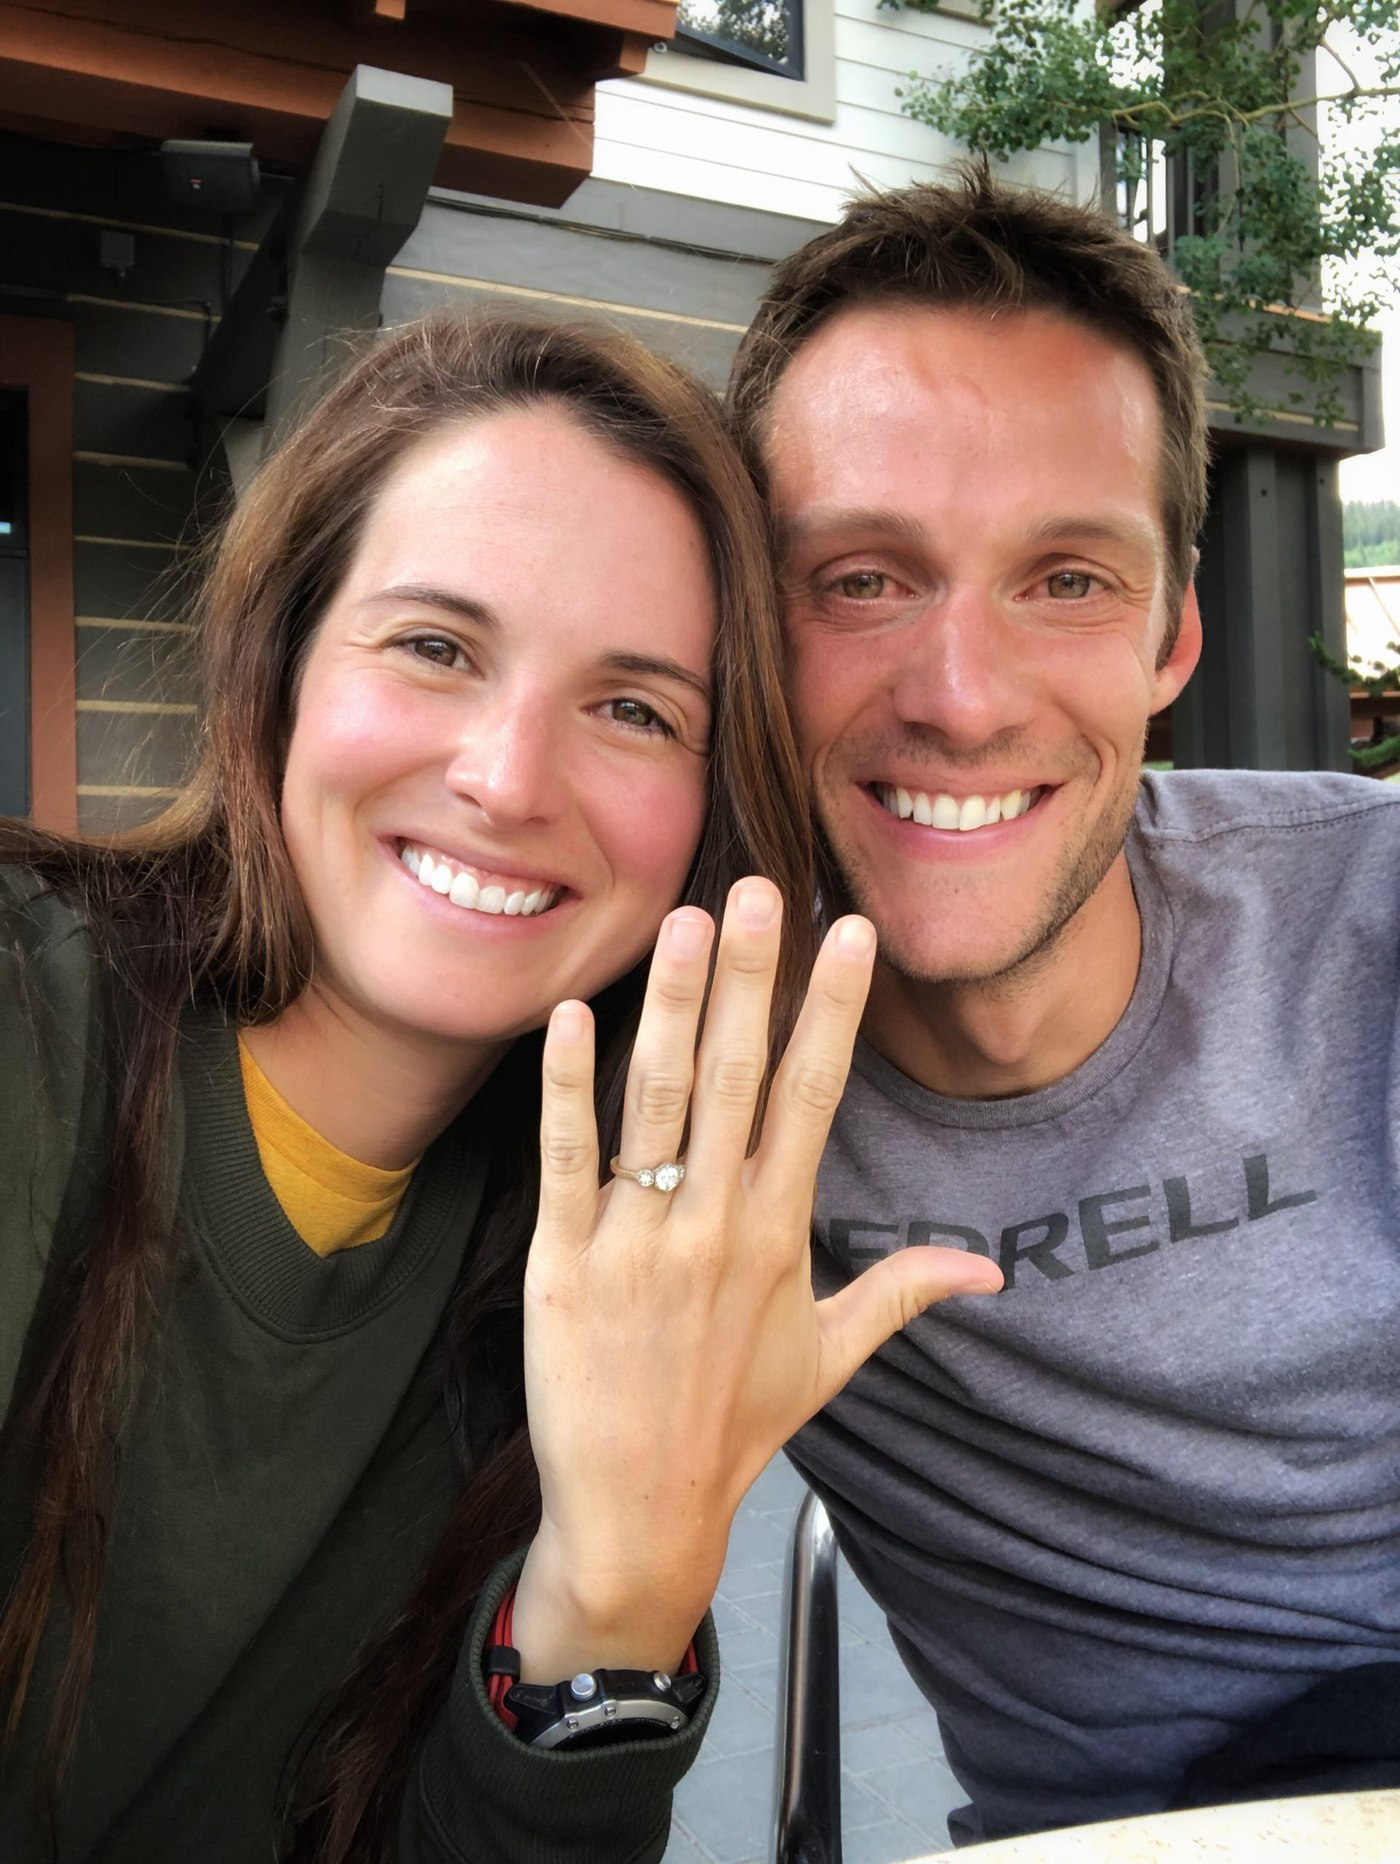 allison-chris-custom-engagement-ring-photo-abby-sparks-jewelry